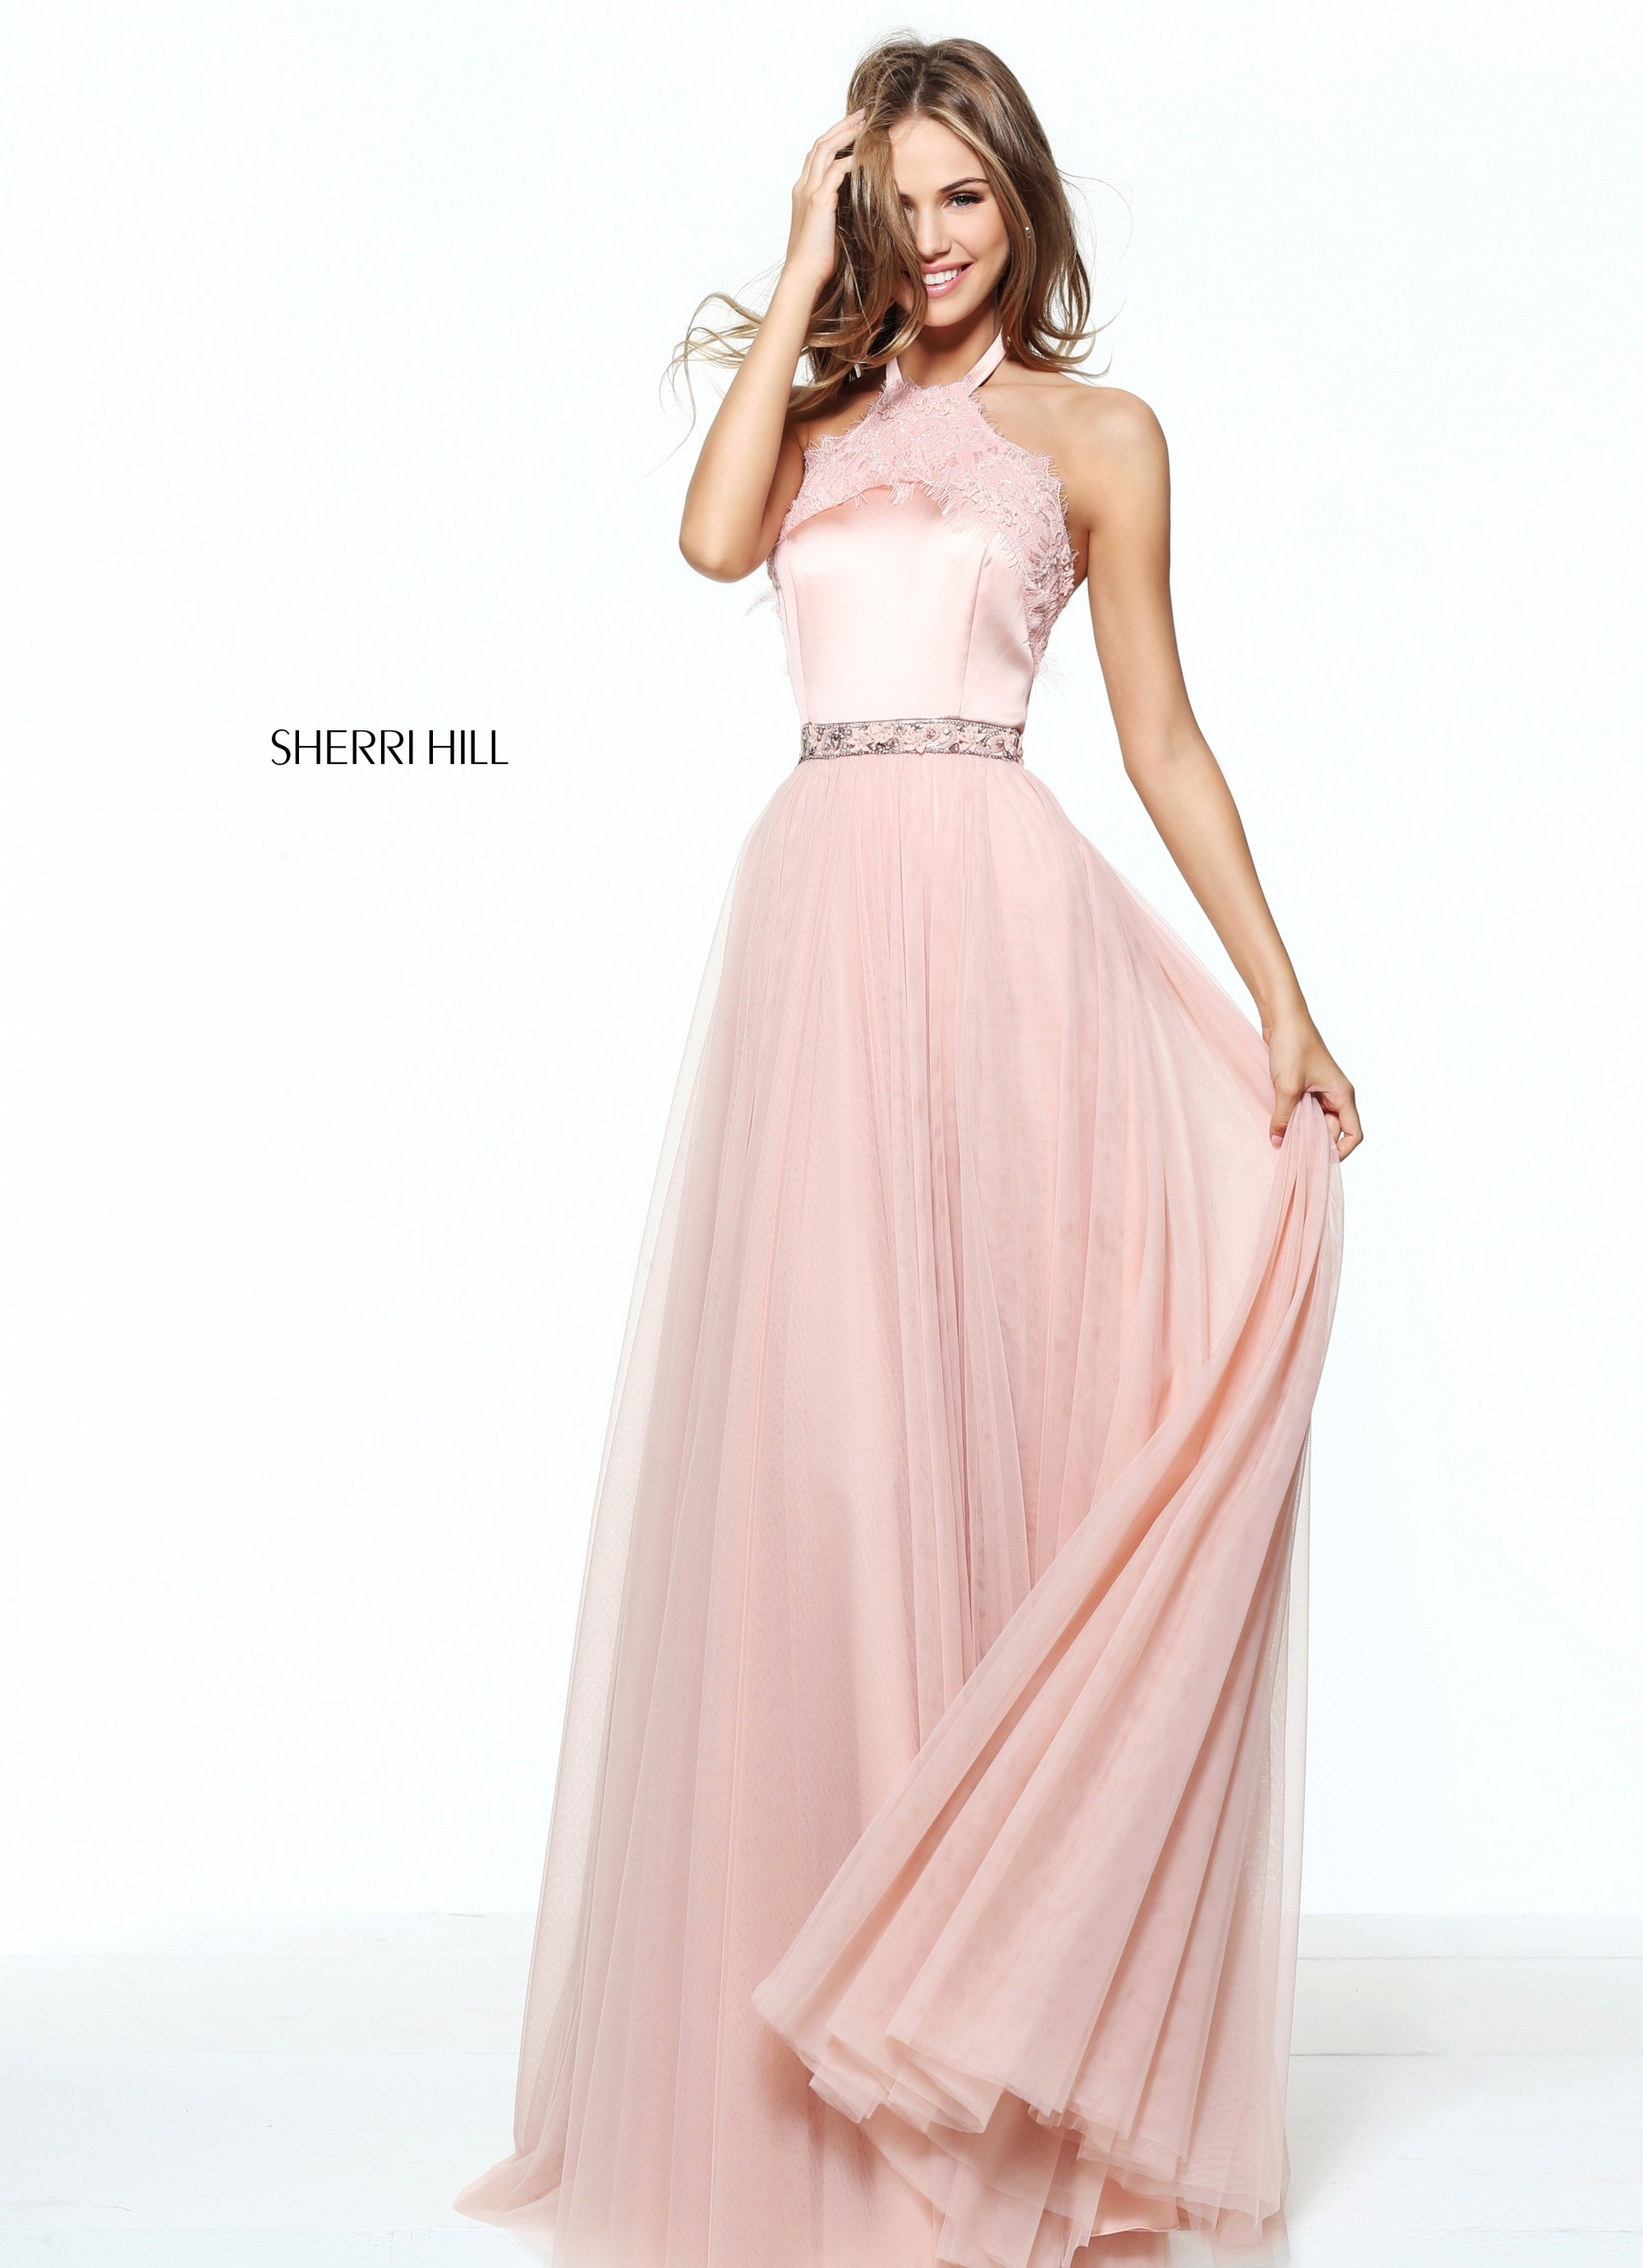 Sherri Hill 50999 Prom Dress | MadameBridal.com